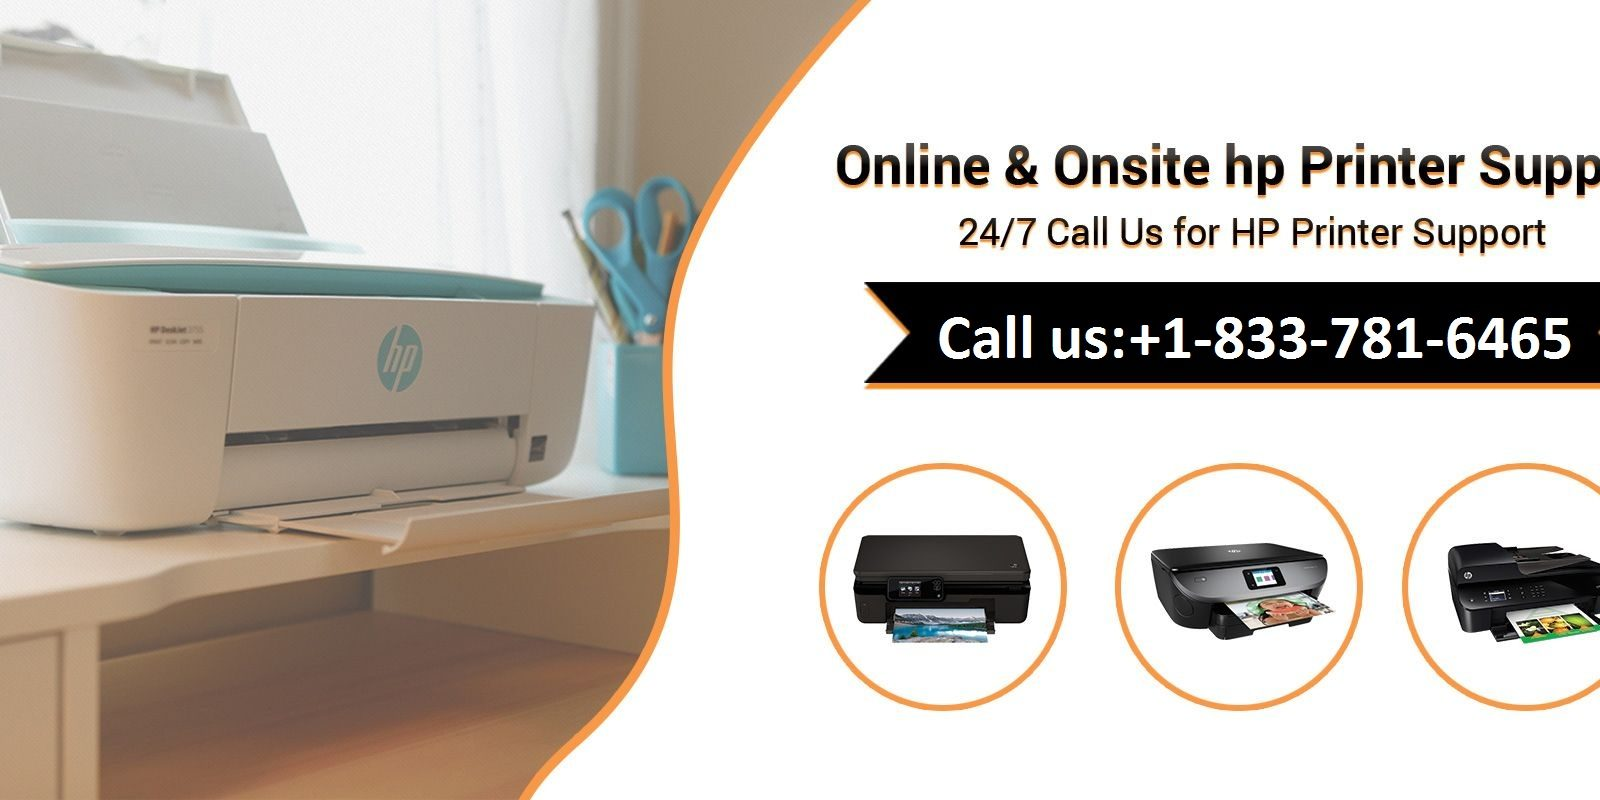 HP Printer Technical Support, HP Printer Support Number, HP Printer Contact Number